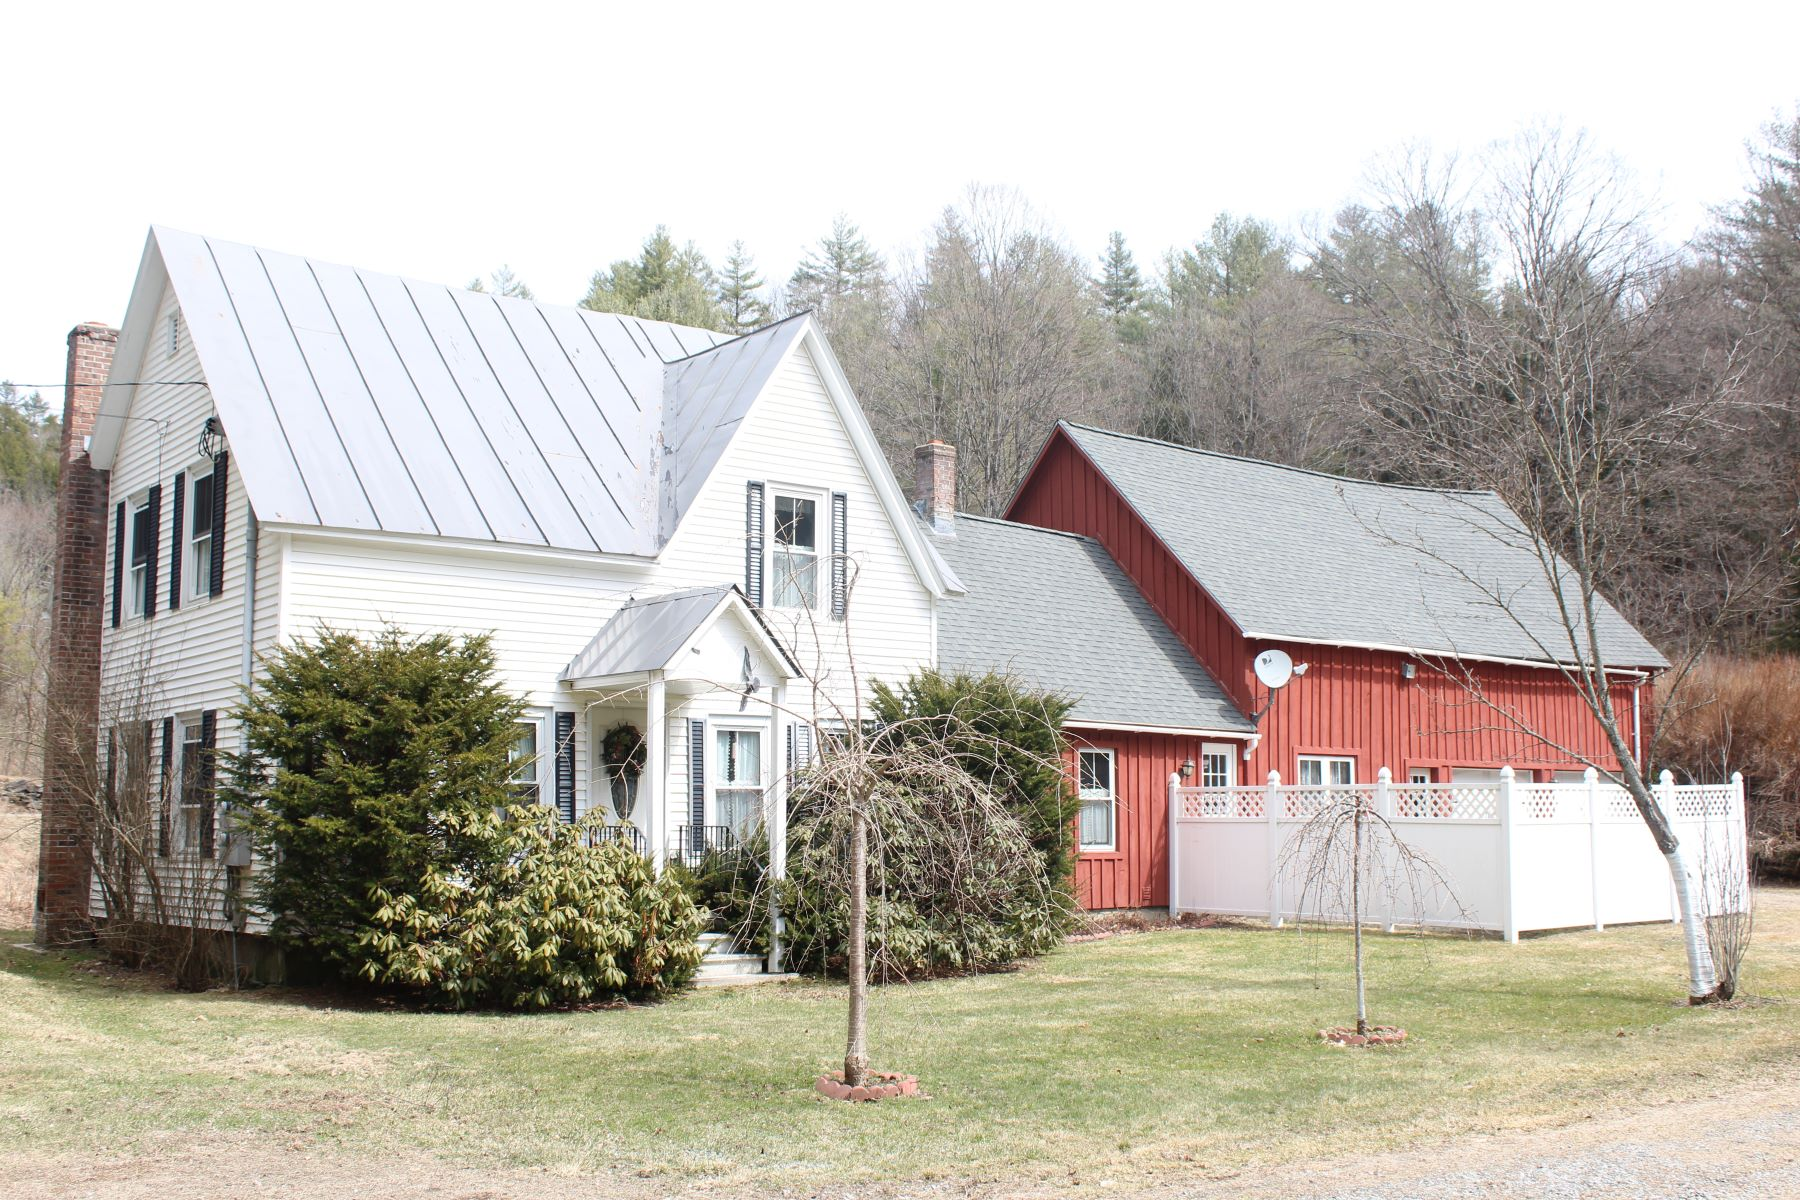 single family homes for Sale at 1324 Route 106, Reading 1324 Route 106 Reading, Vermont 05062 United States